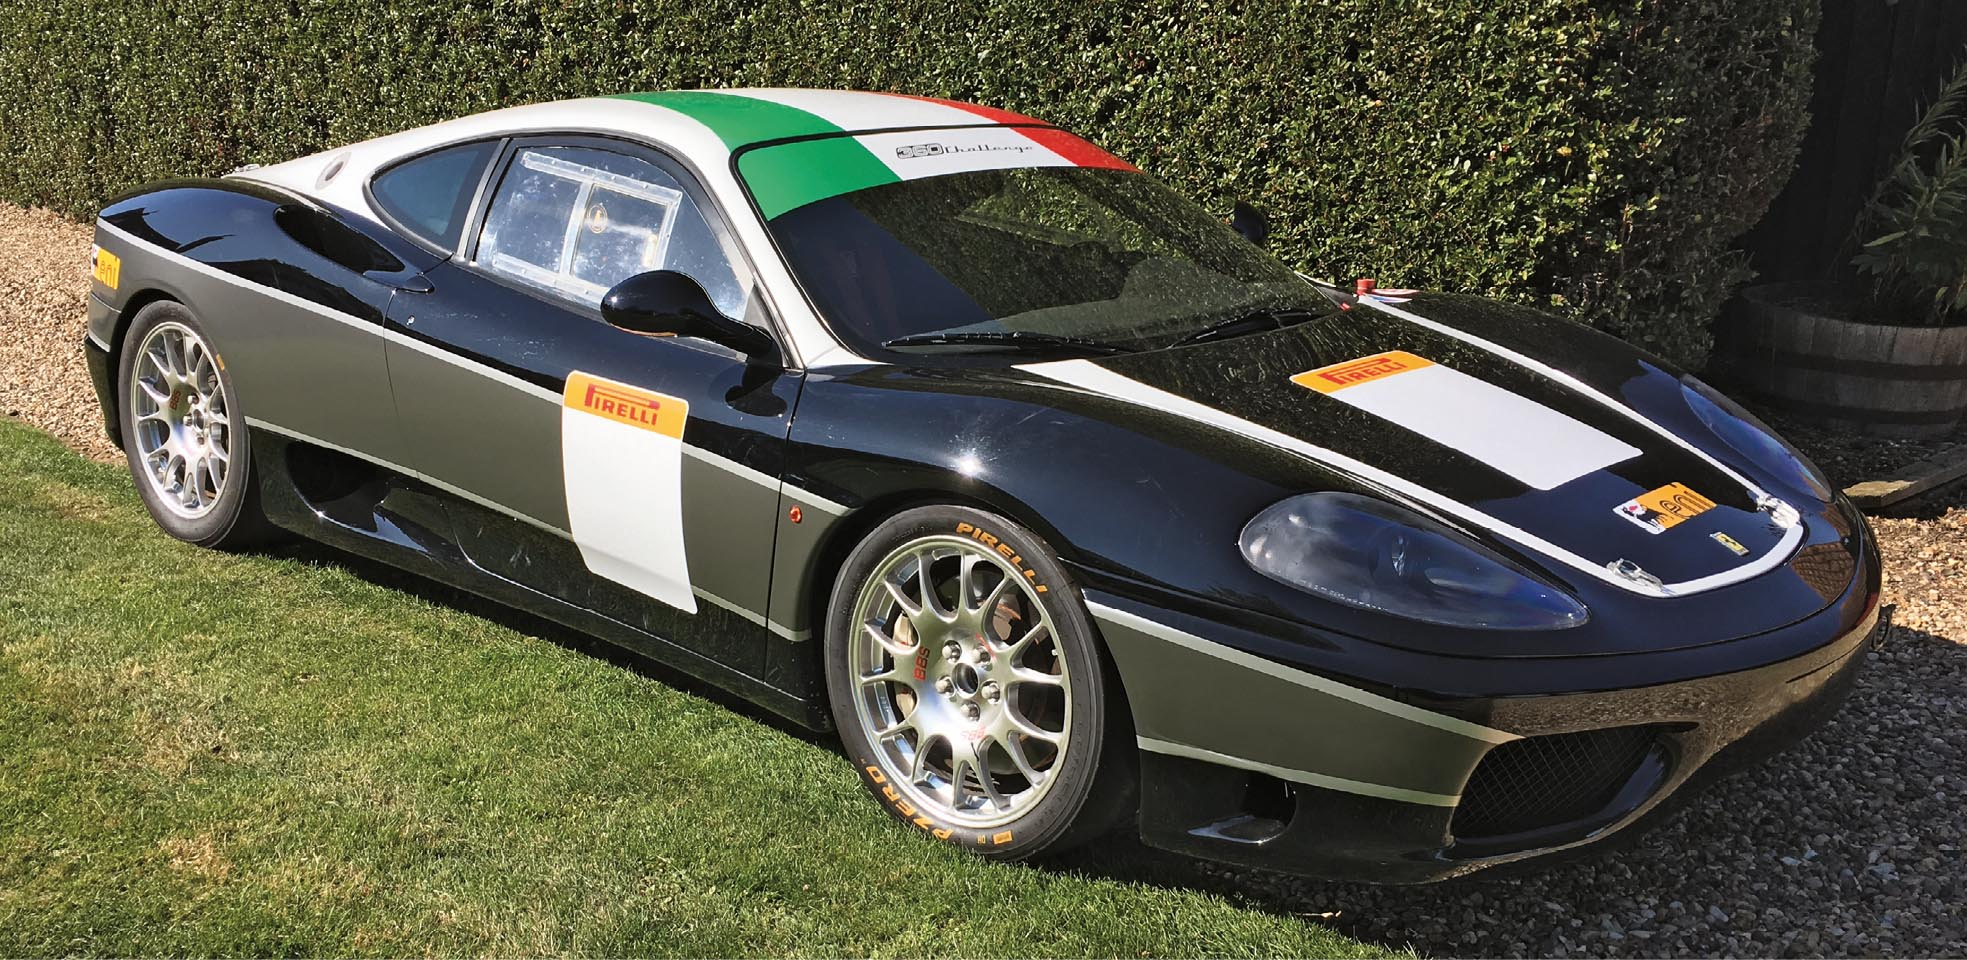 Great looks and a 'wants for nothing' mechanical refresh make this 360 Challenge an appealing example for anybody looking for a race or track-ready Ferrari.